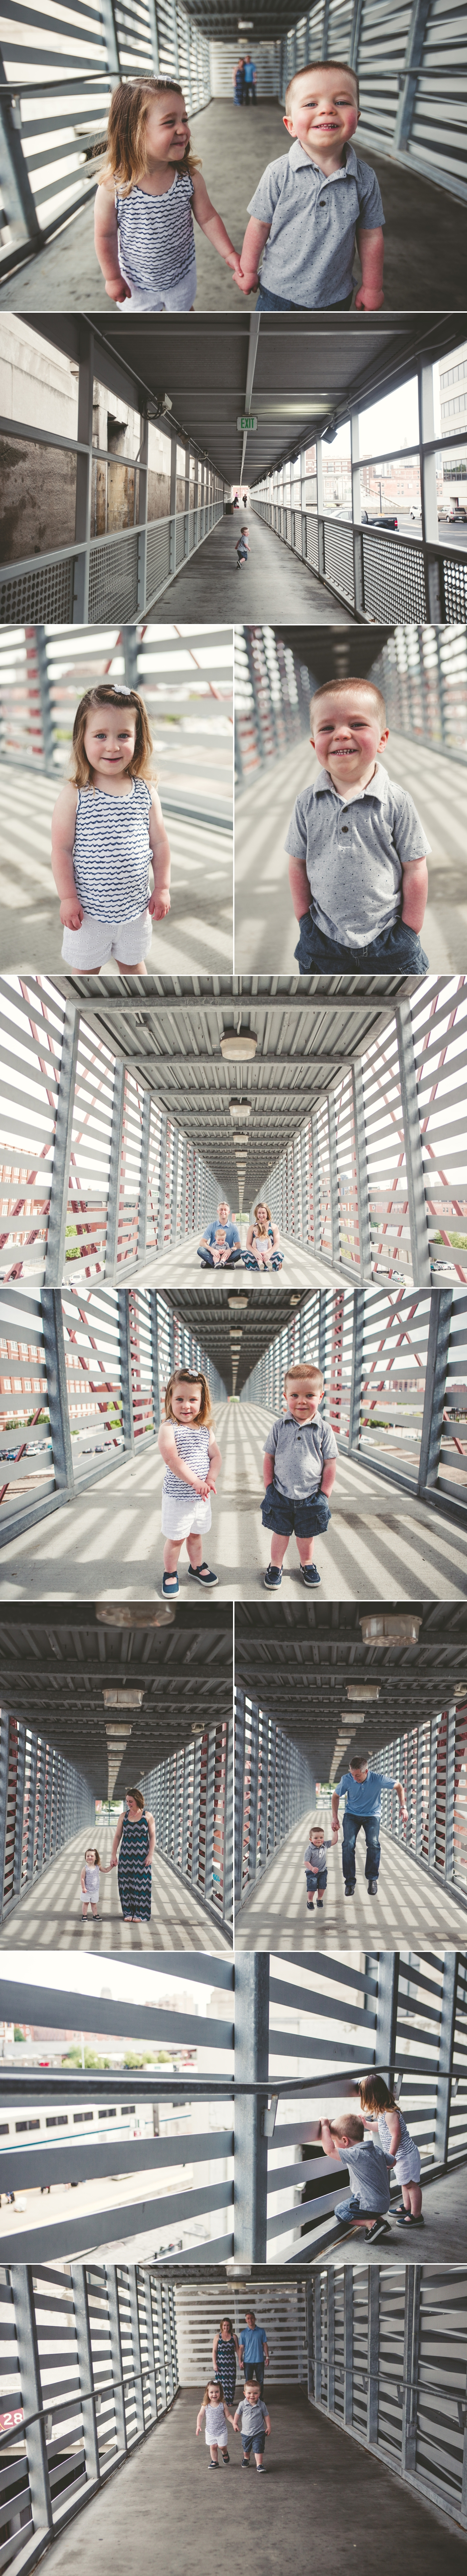 jason_domingues_photography_best_kansas_city_photographer_family_session_union_station_kc